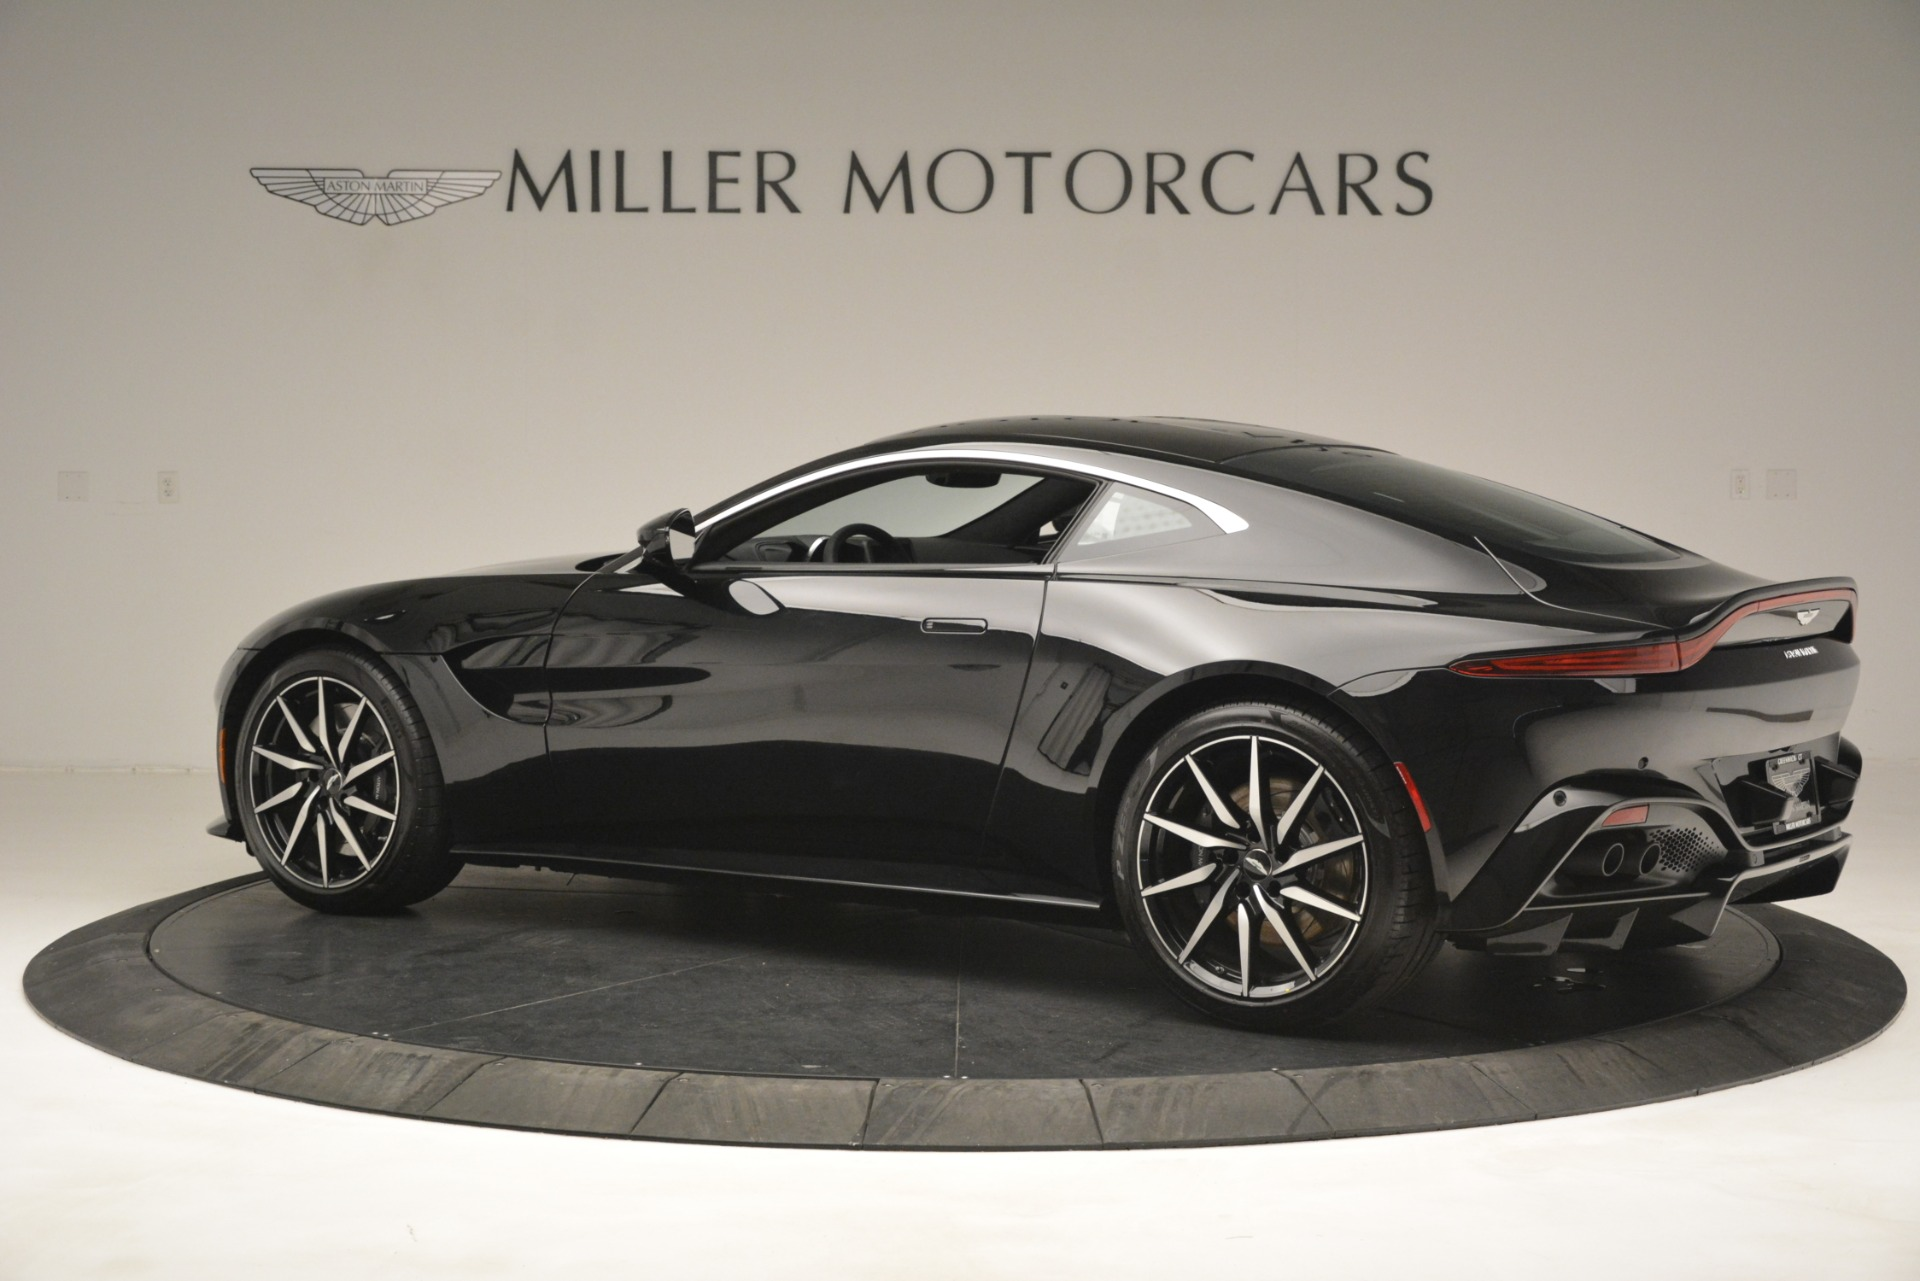 New 2019 Aston Martin Vantage V8 For Sale In Westport, CT 3124_p4